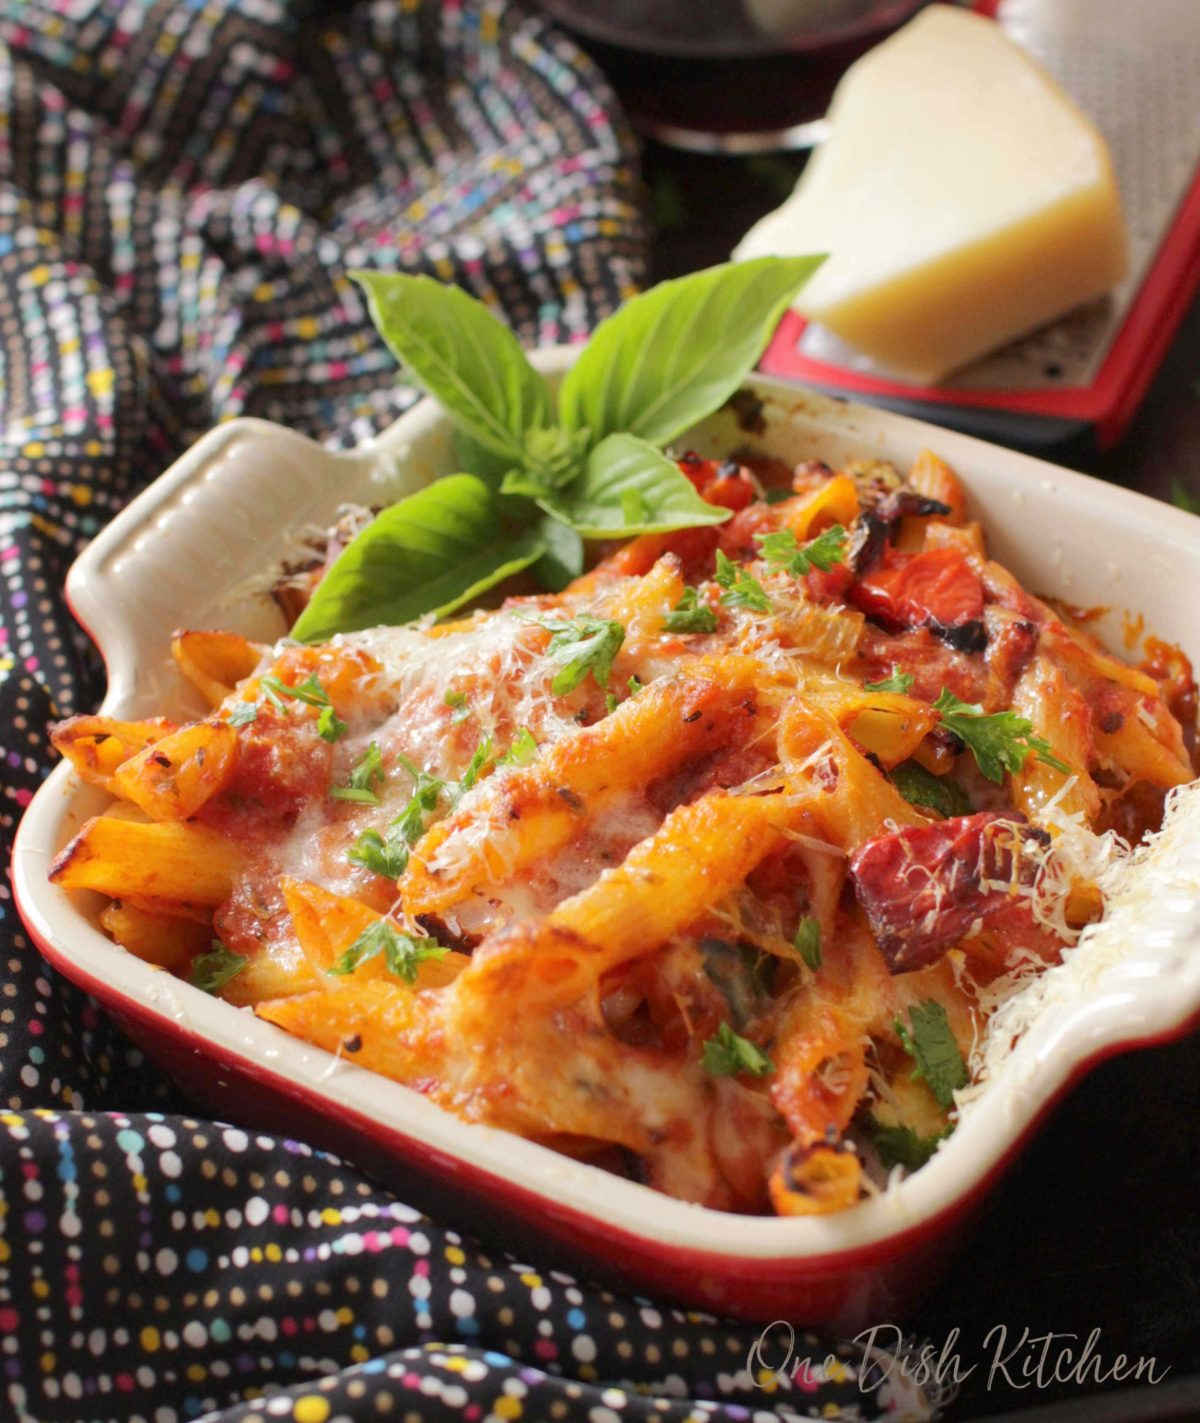 Pasta casserole with bits of roasted red peppers and zucchini arranged in a small baking dish garnished with a sprig of basil on the side and a block of parmesan cheese on a flat cheese grater in the background all on a multicolored cloth